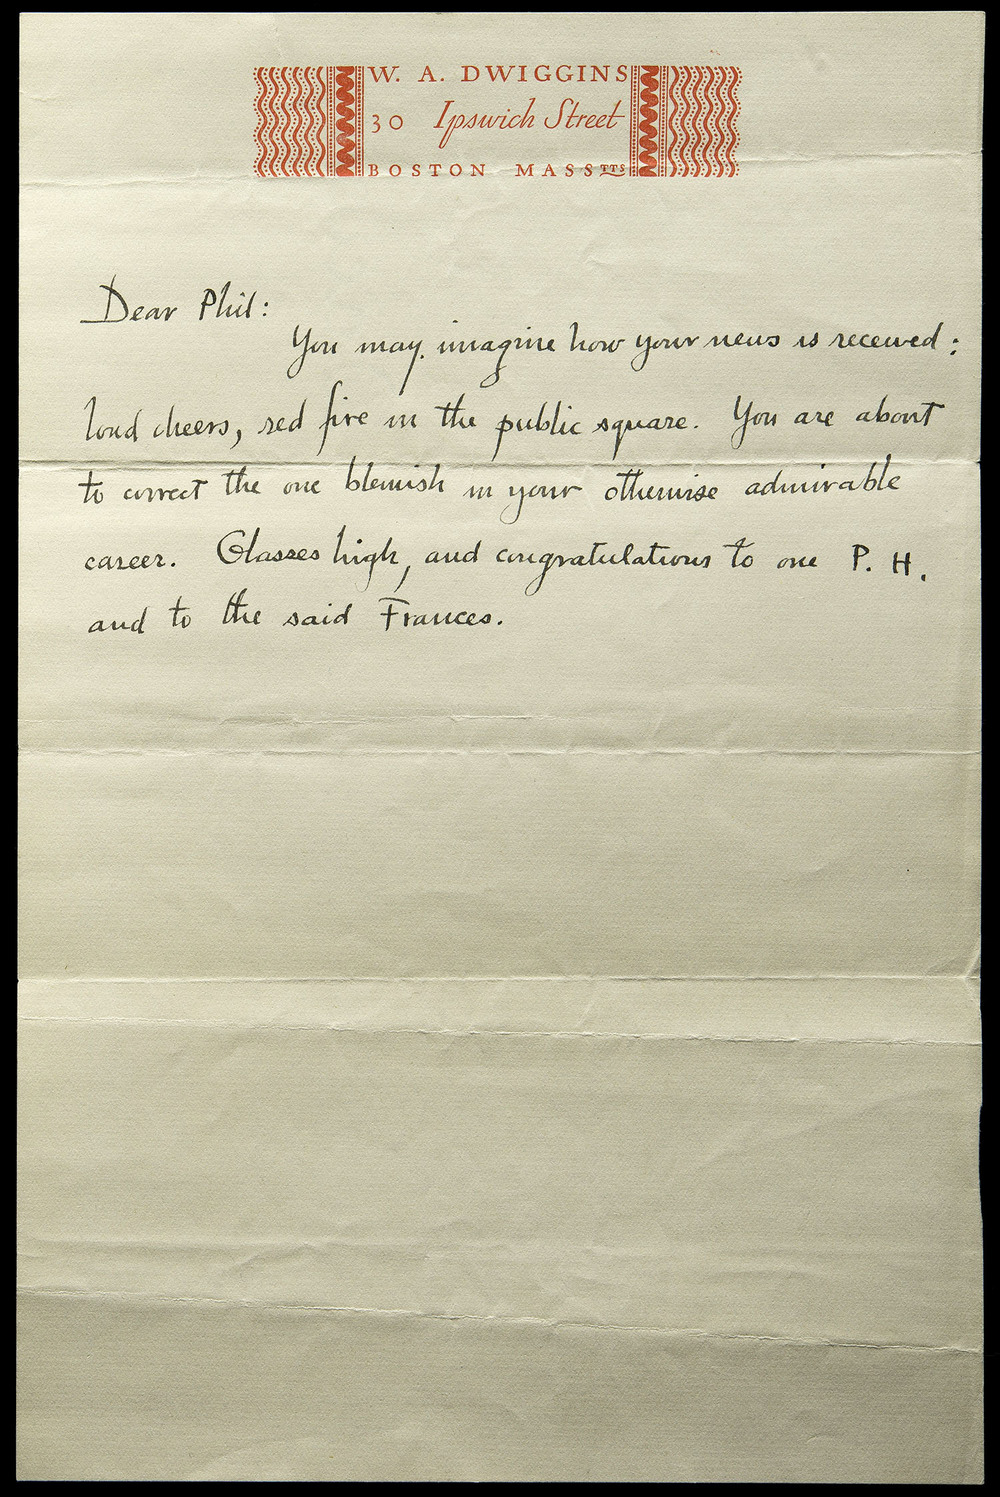 Letter to Philip Hofer on the occasion of his engagement, 1930, 15.7 x 24 cm